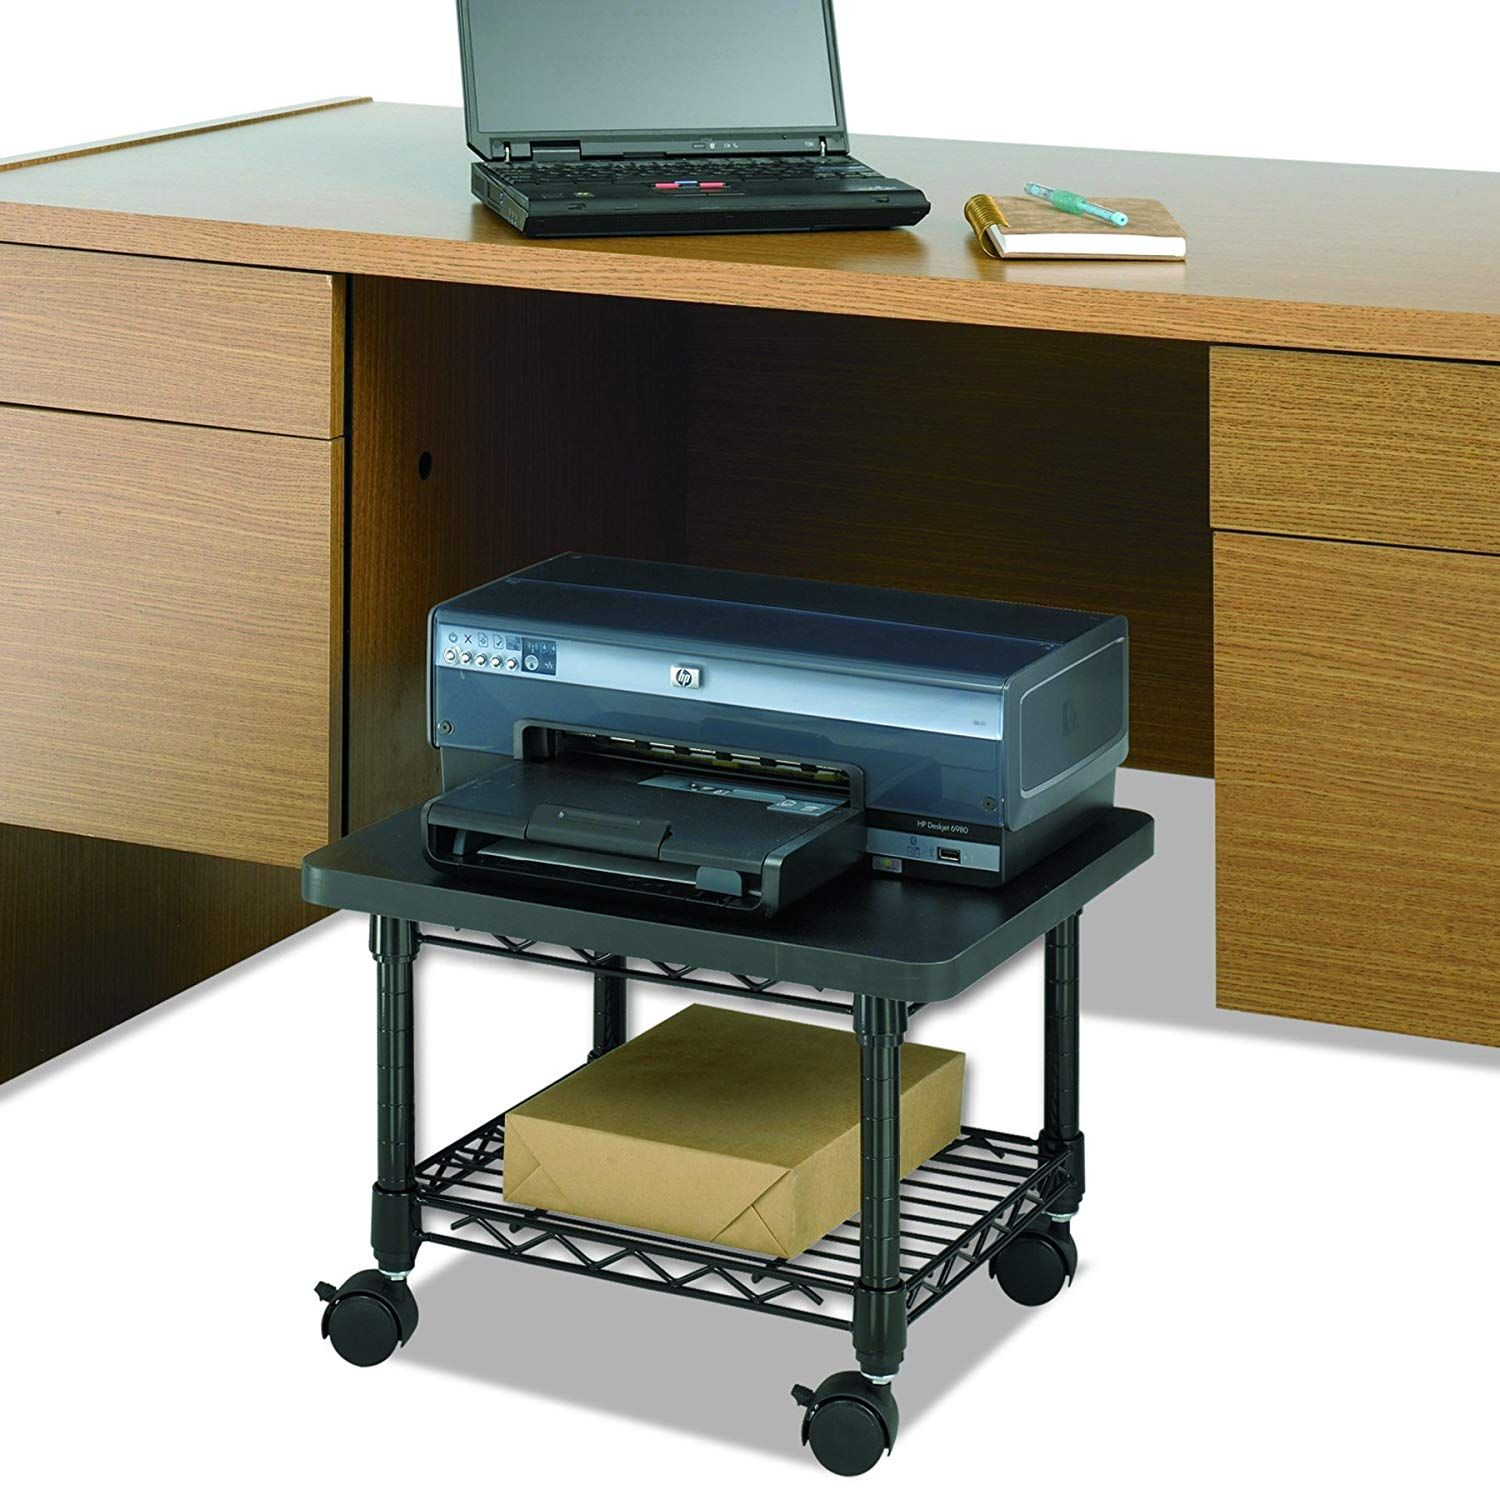 Pin On Printer Stand Cabinets